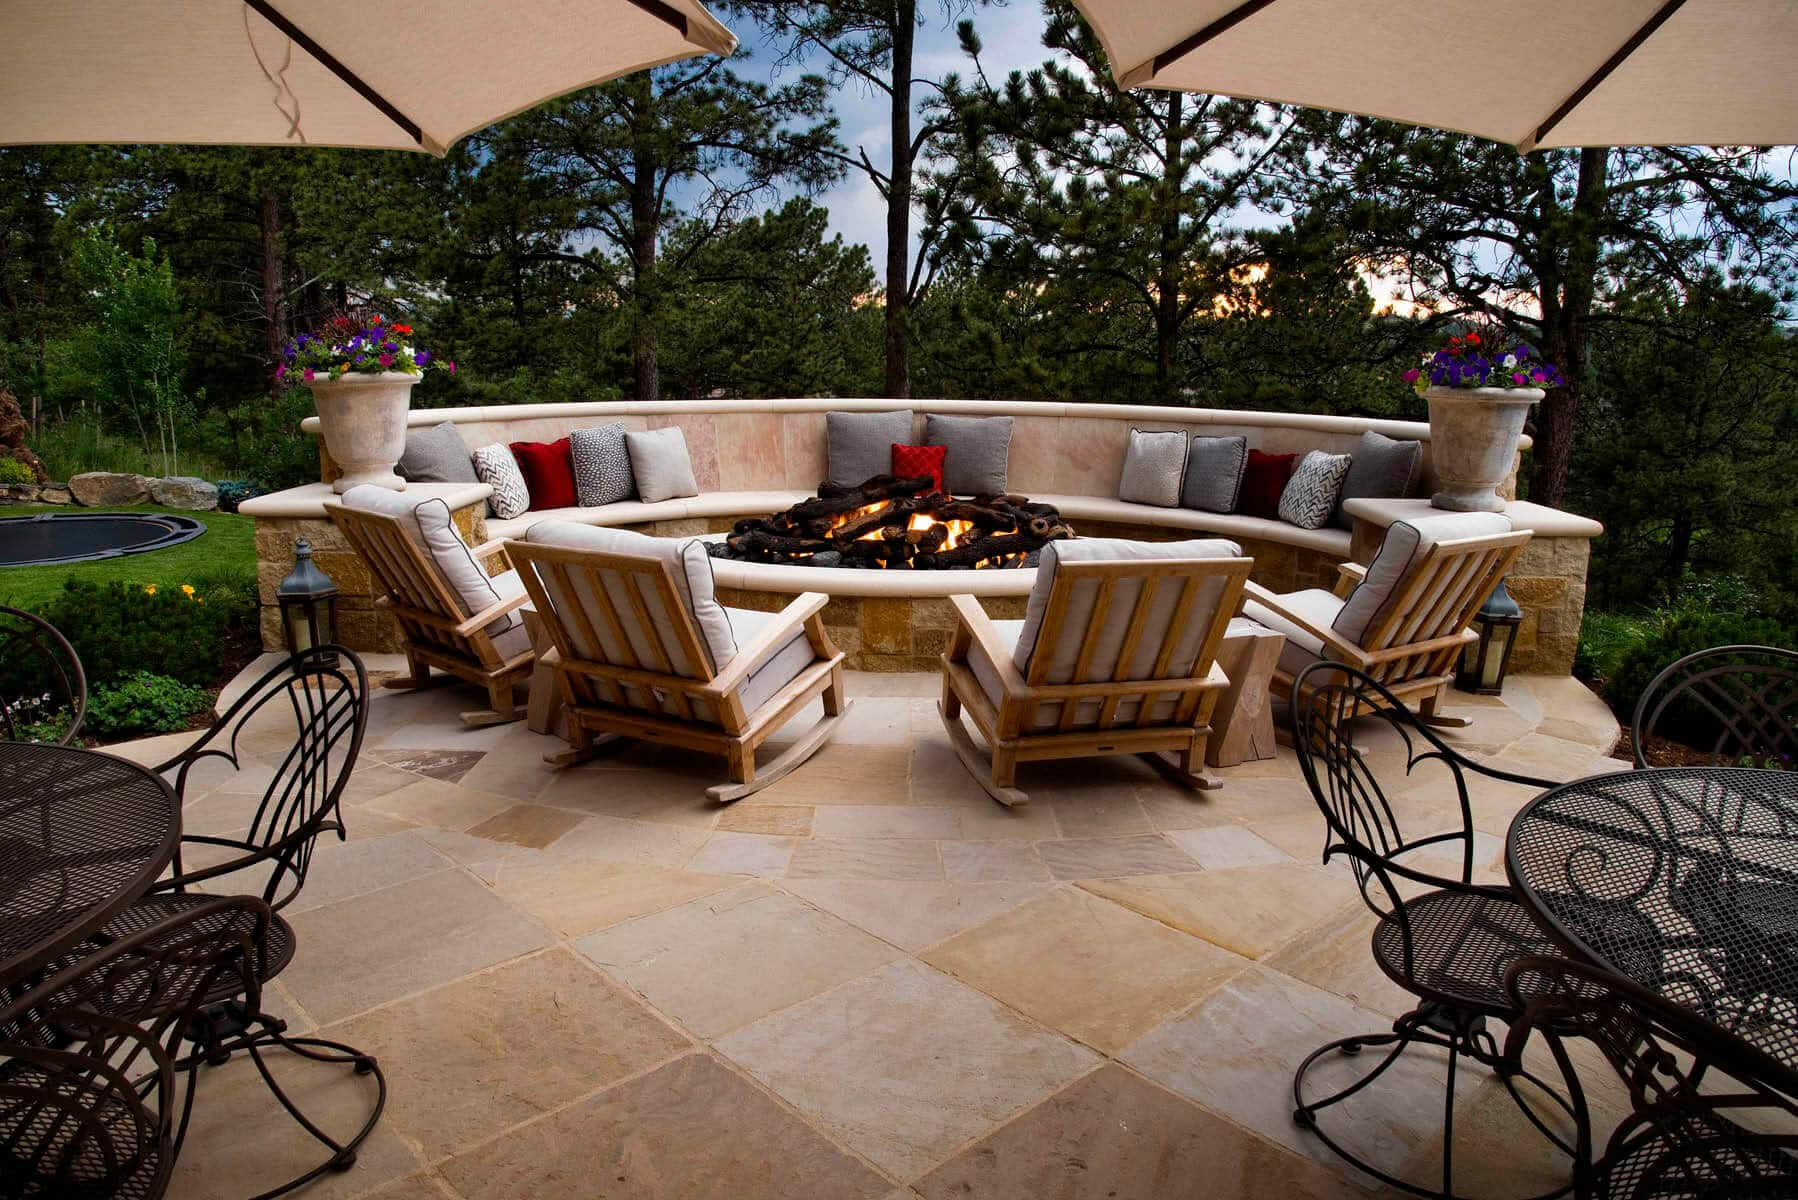 Blog Featured – Enjoy outdoor living all year long with a custom fire feature.